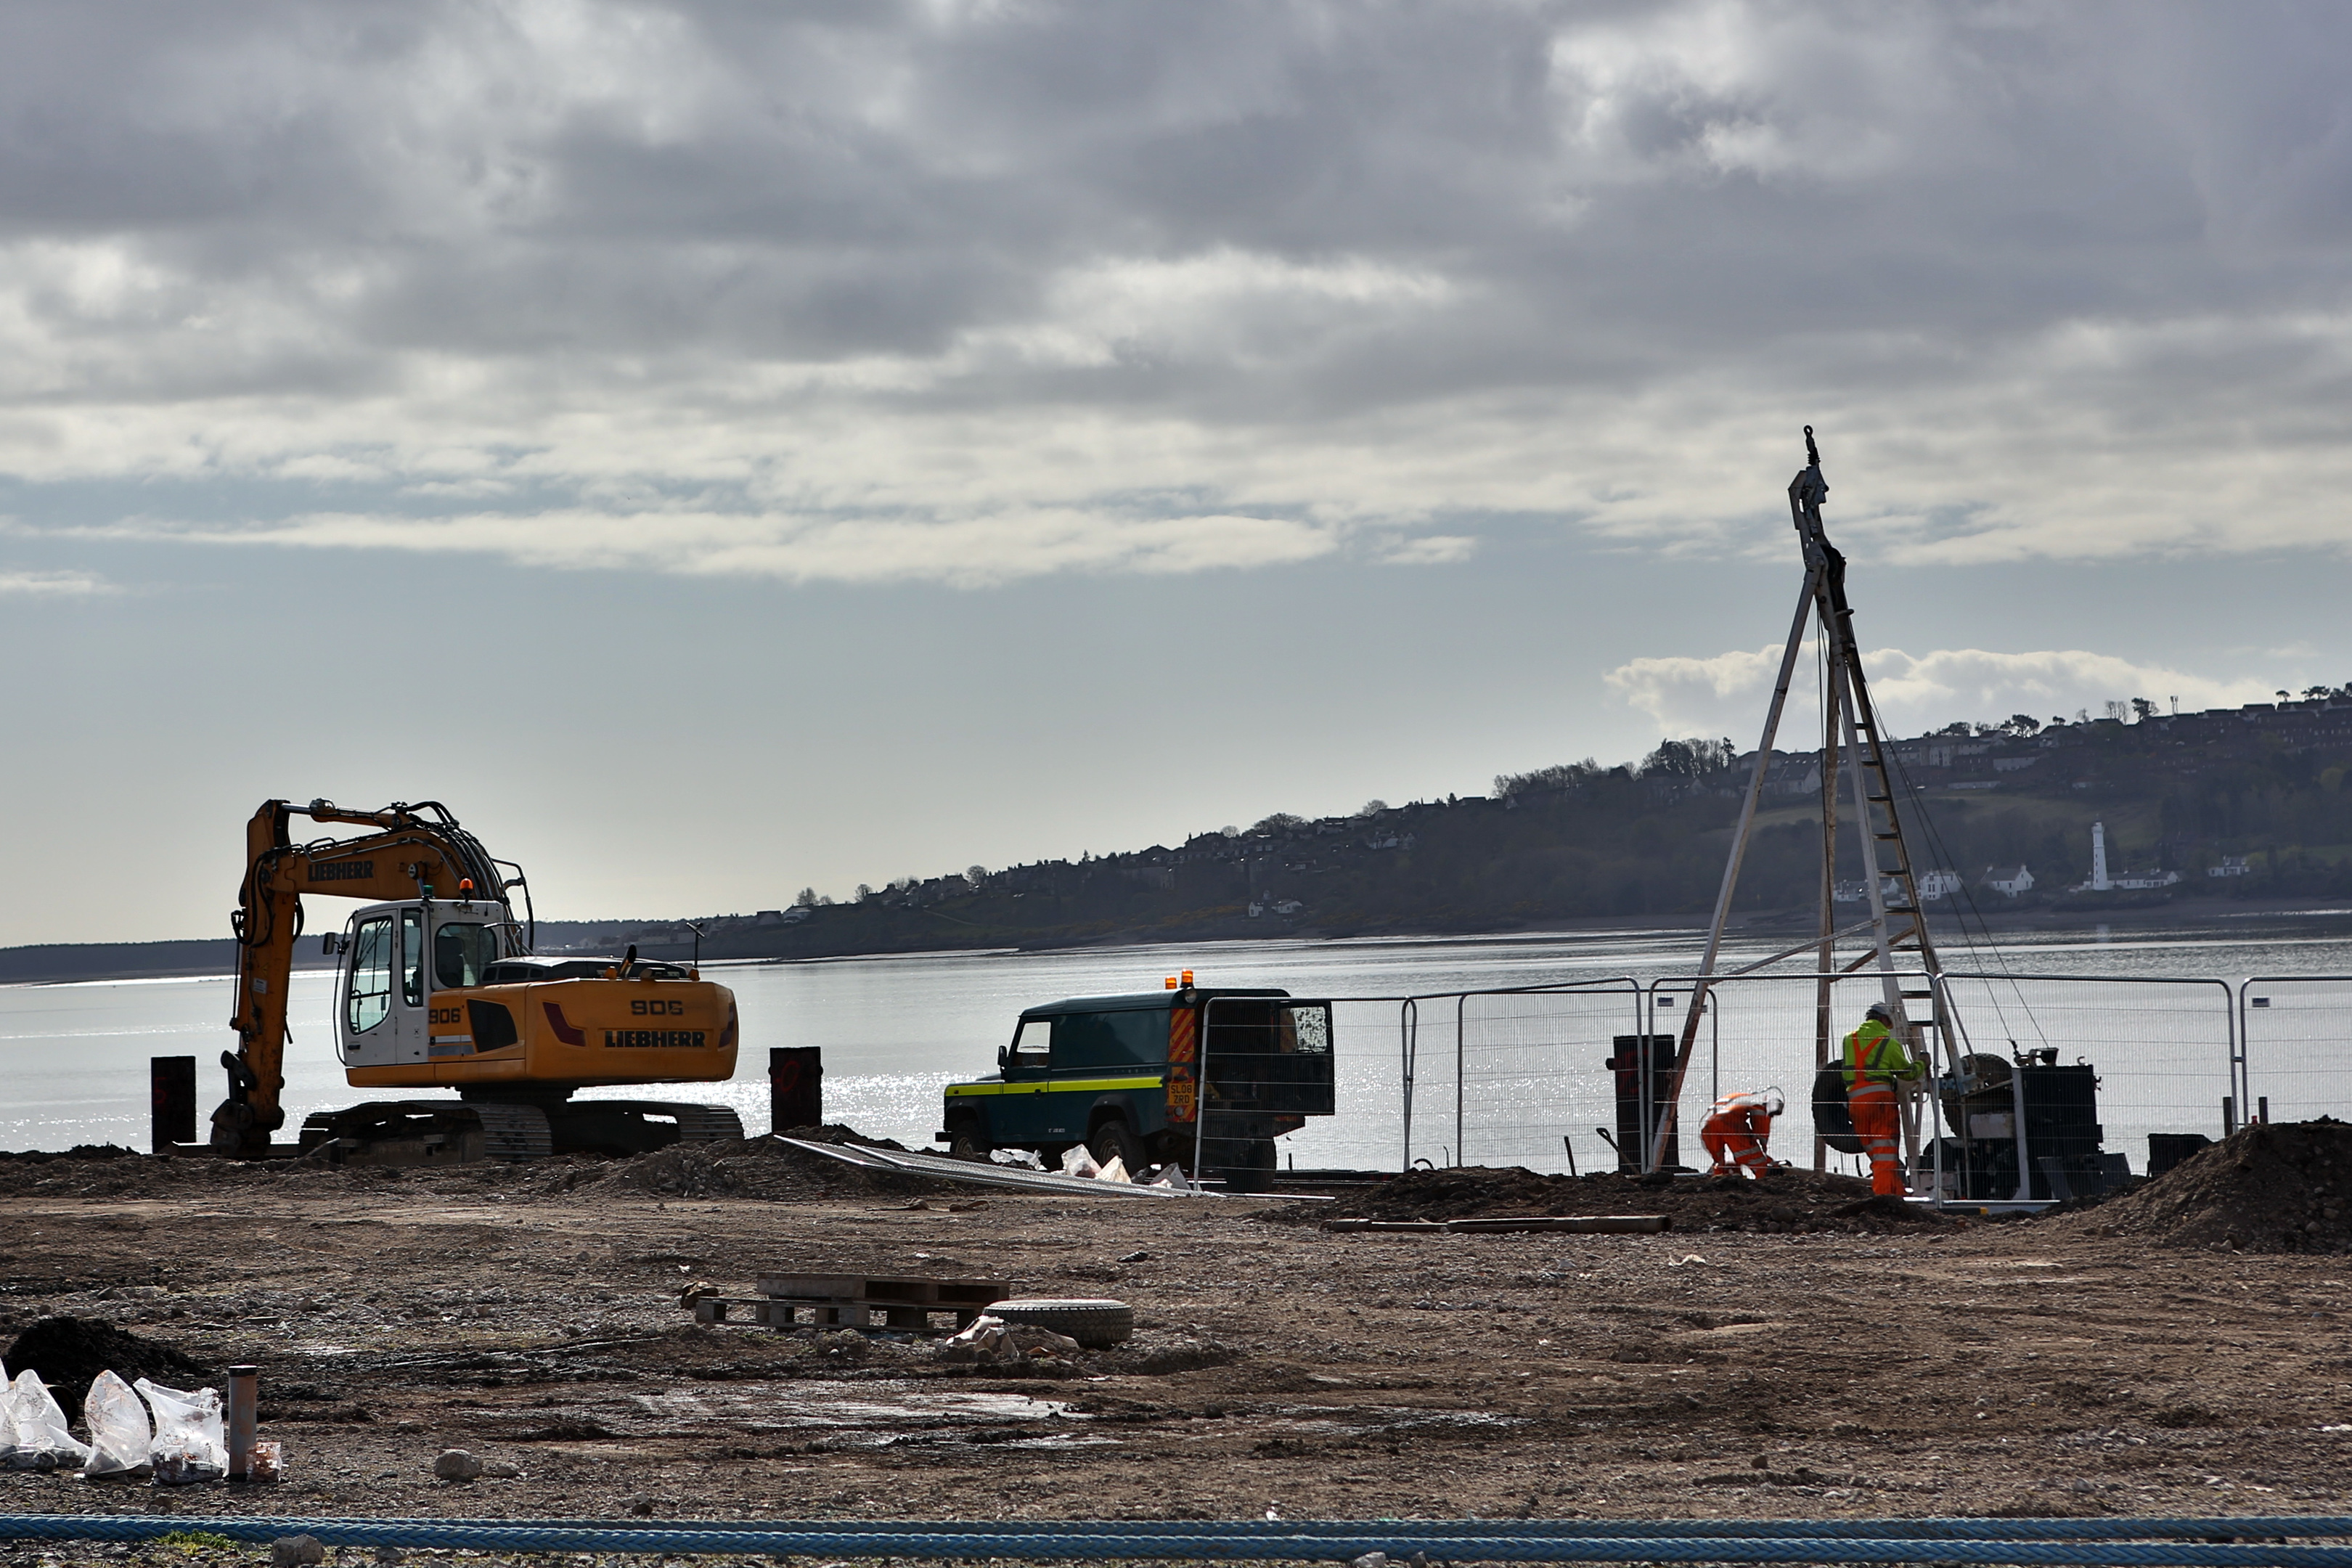 Work is already under way at the Port of Dundee on a £10 million upgrade of the dockside to allow heavy infrastructure to be taken on and offshore.